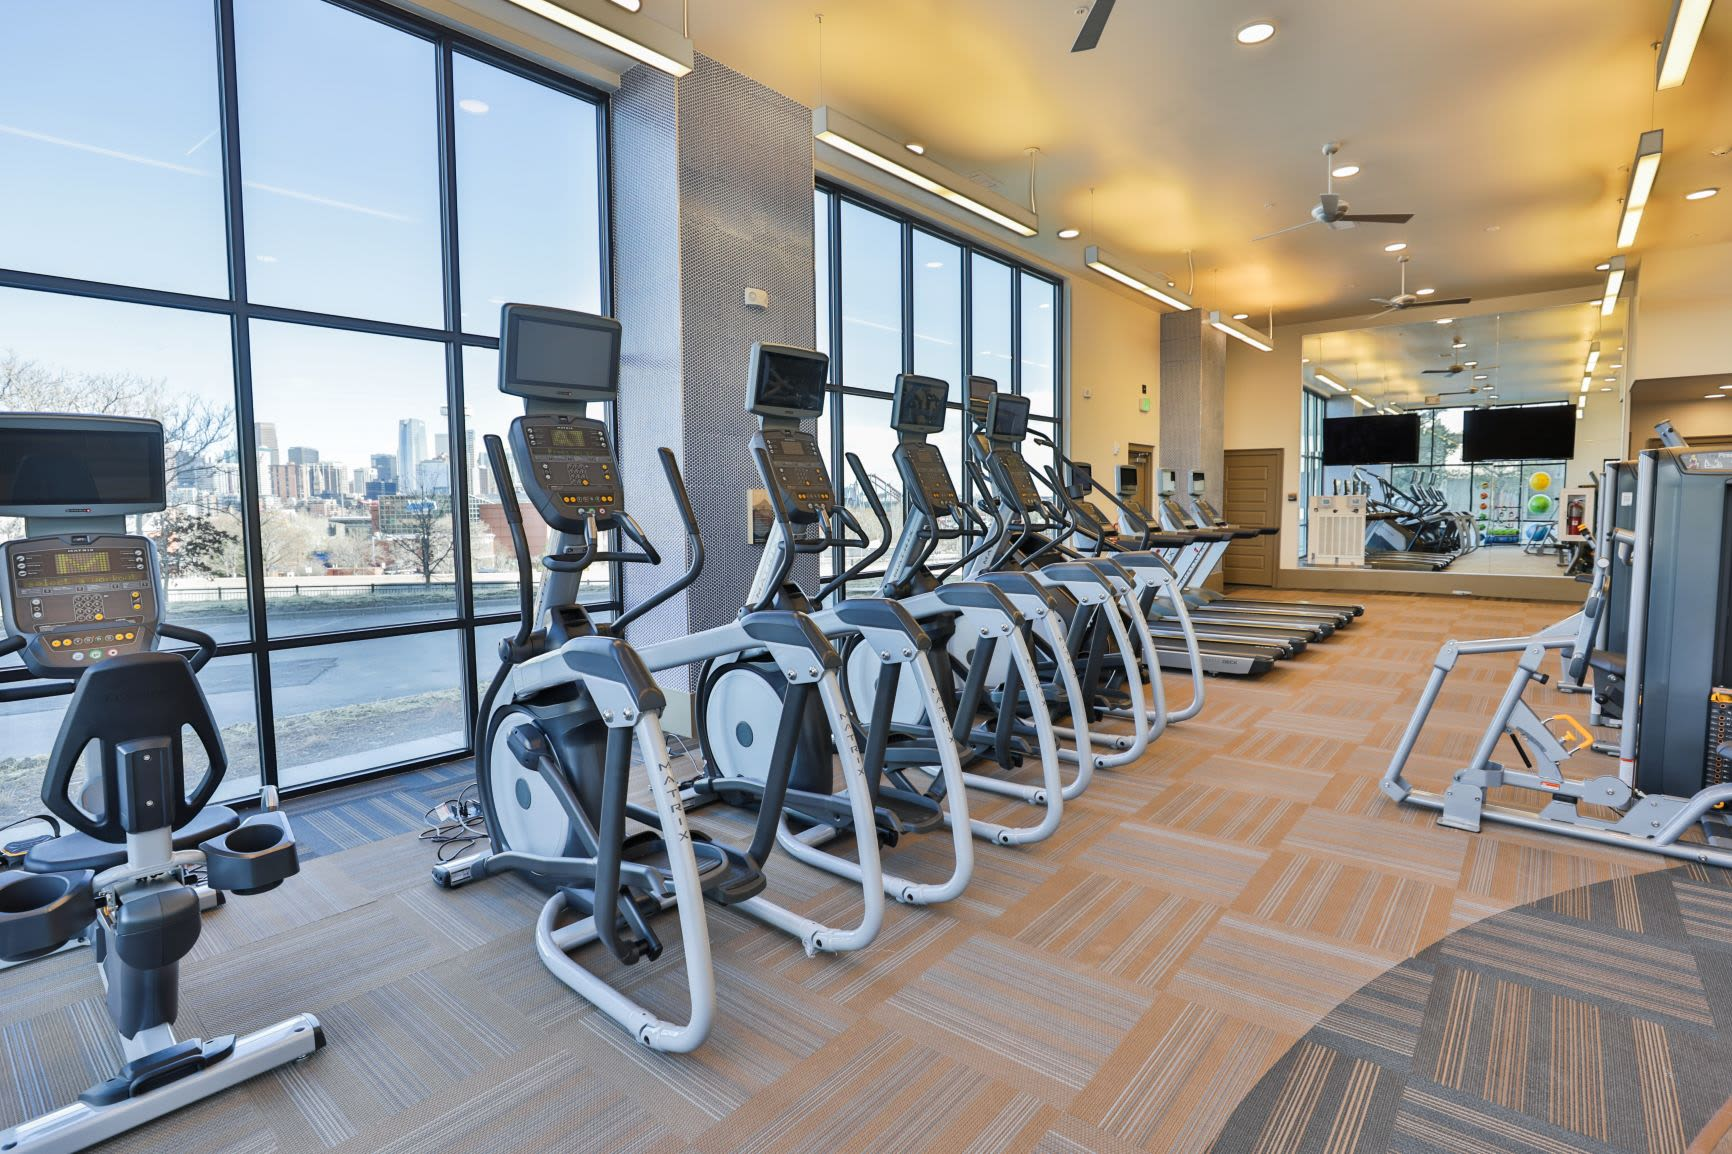 Well equipped fitness center at The Alcott in Downtown Denver, Colorado